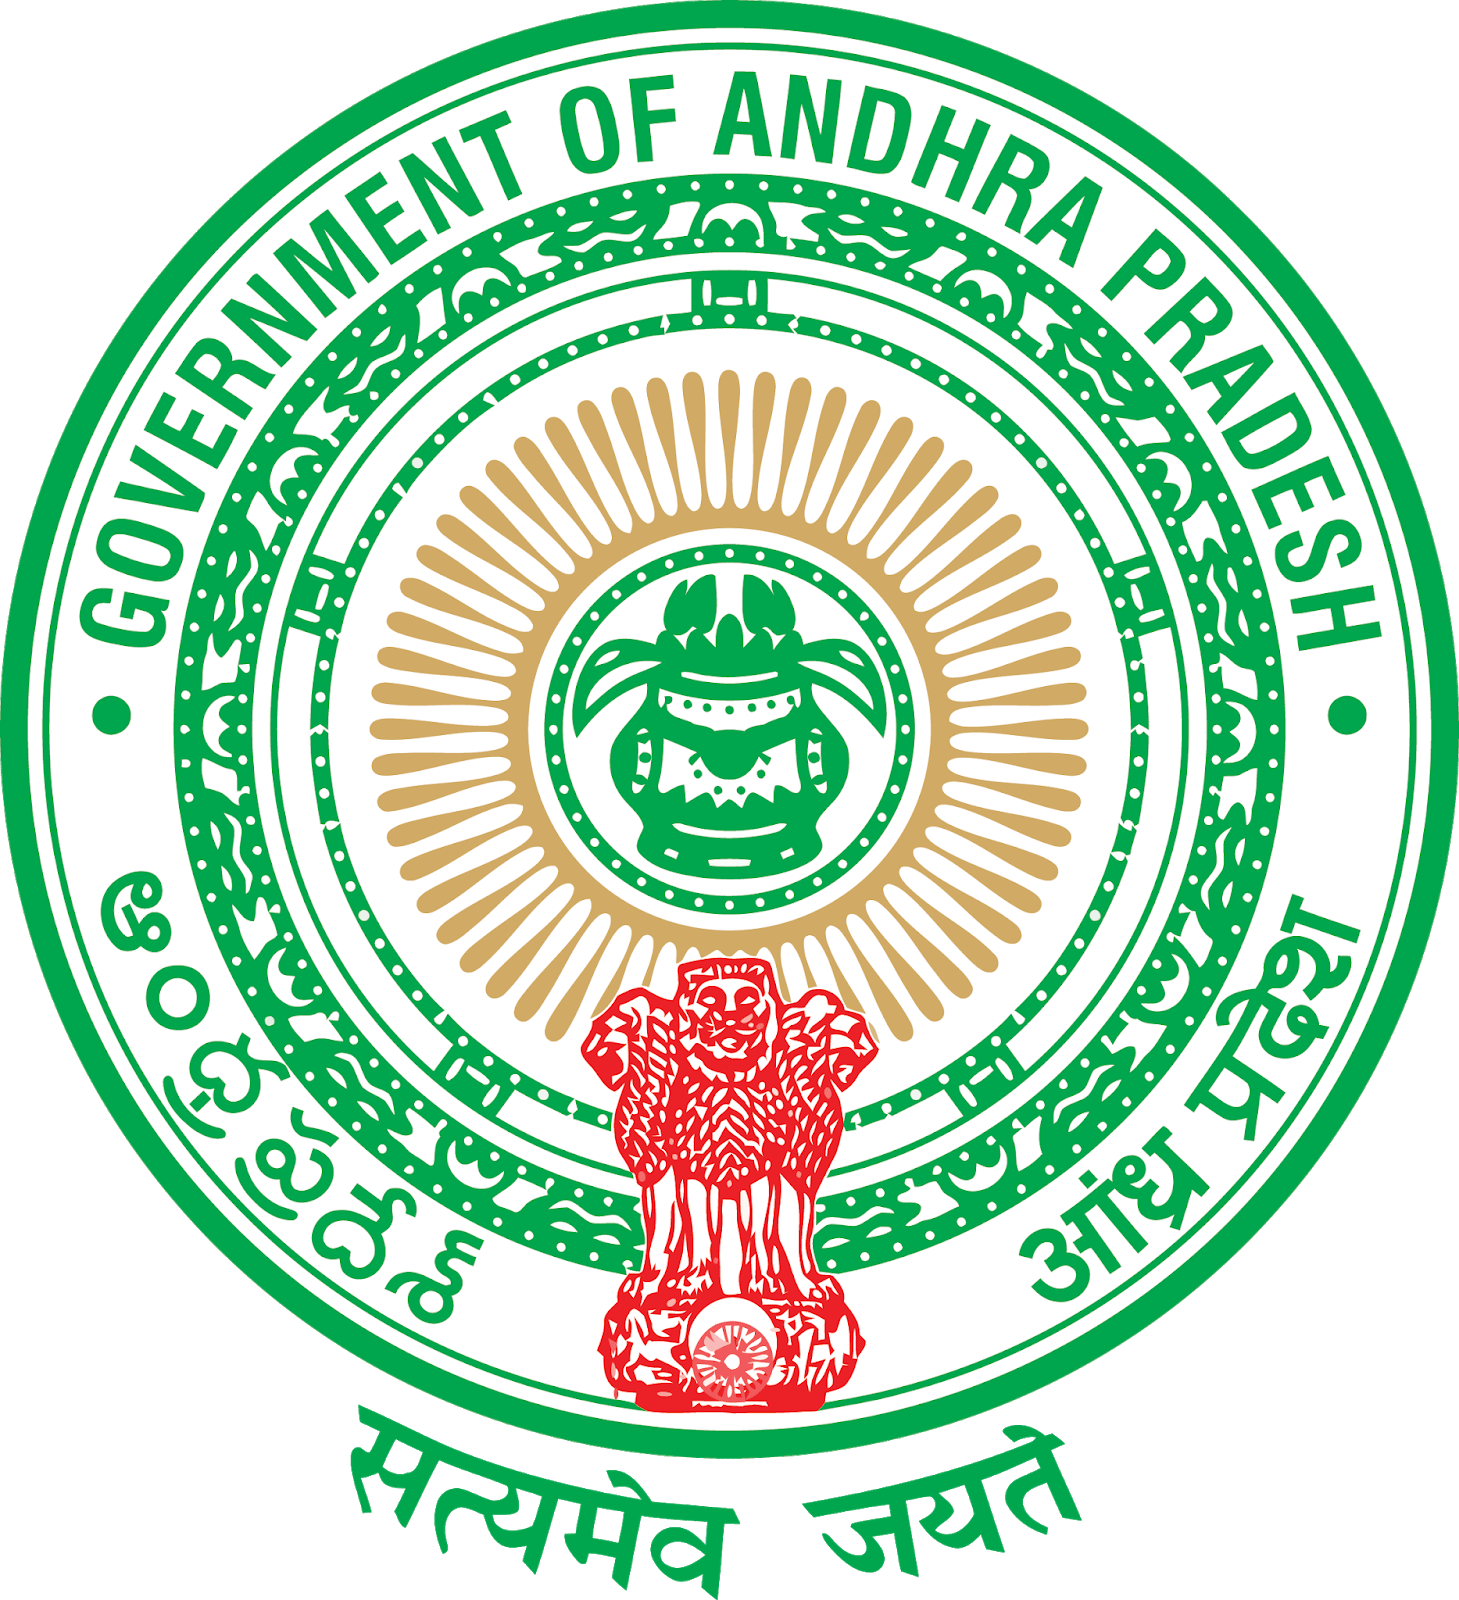 Andhra Pradesh Integrated Common Entrance Test (AP ICET)